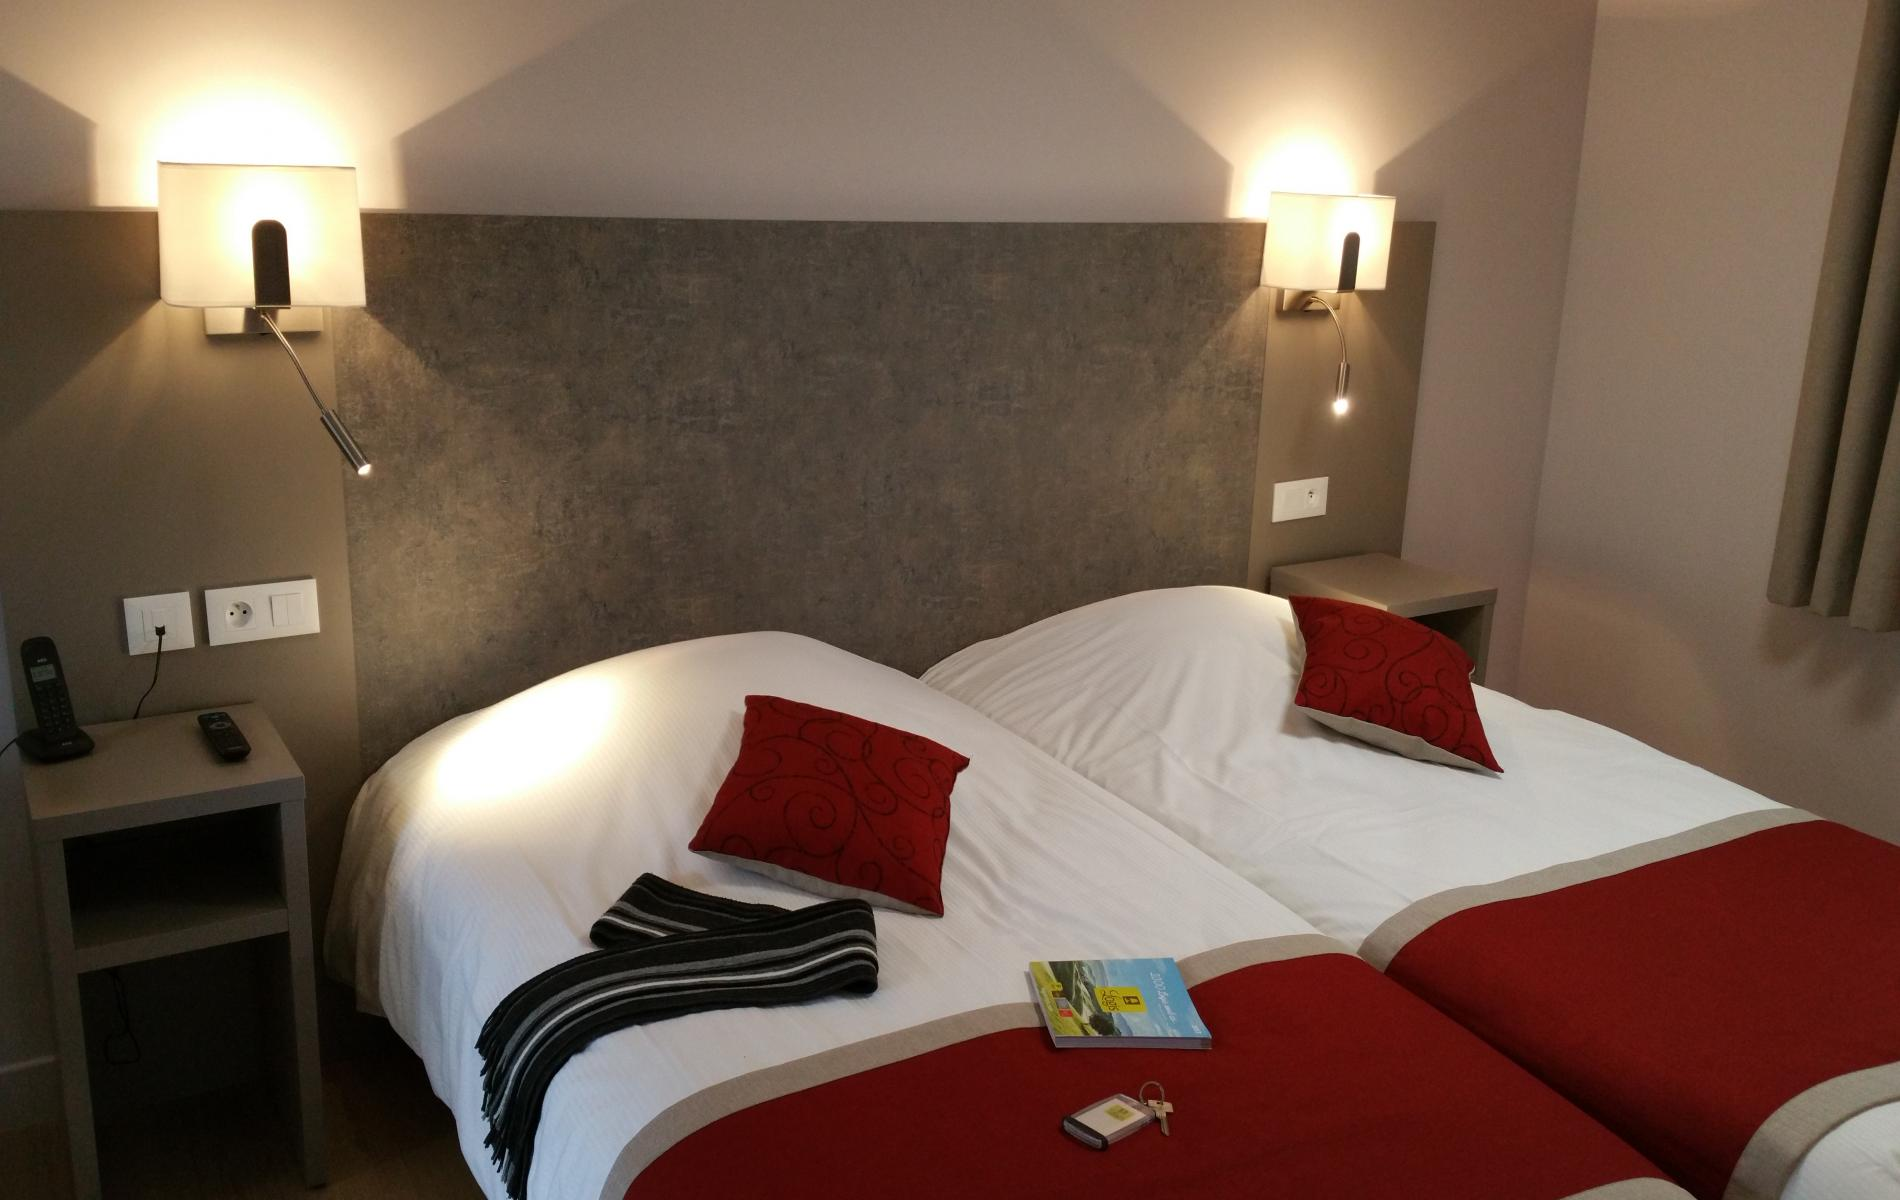 Appart Hotel, Studio, Lodging. Bedroom 2 beds (twin)